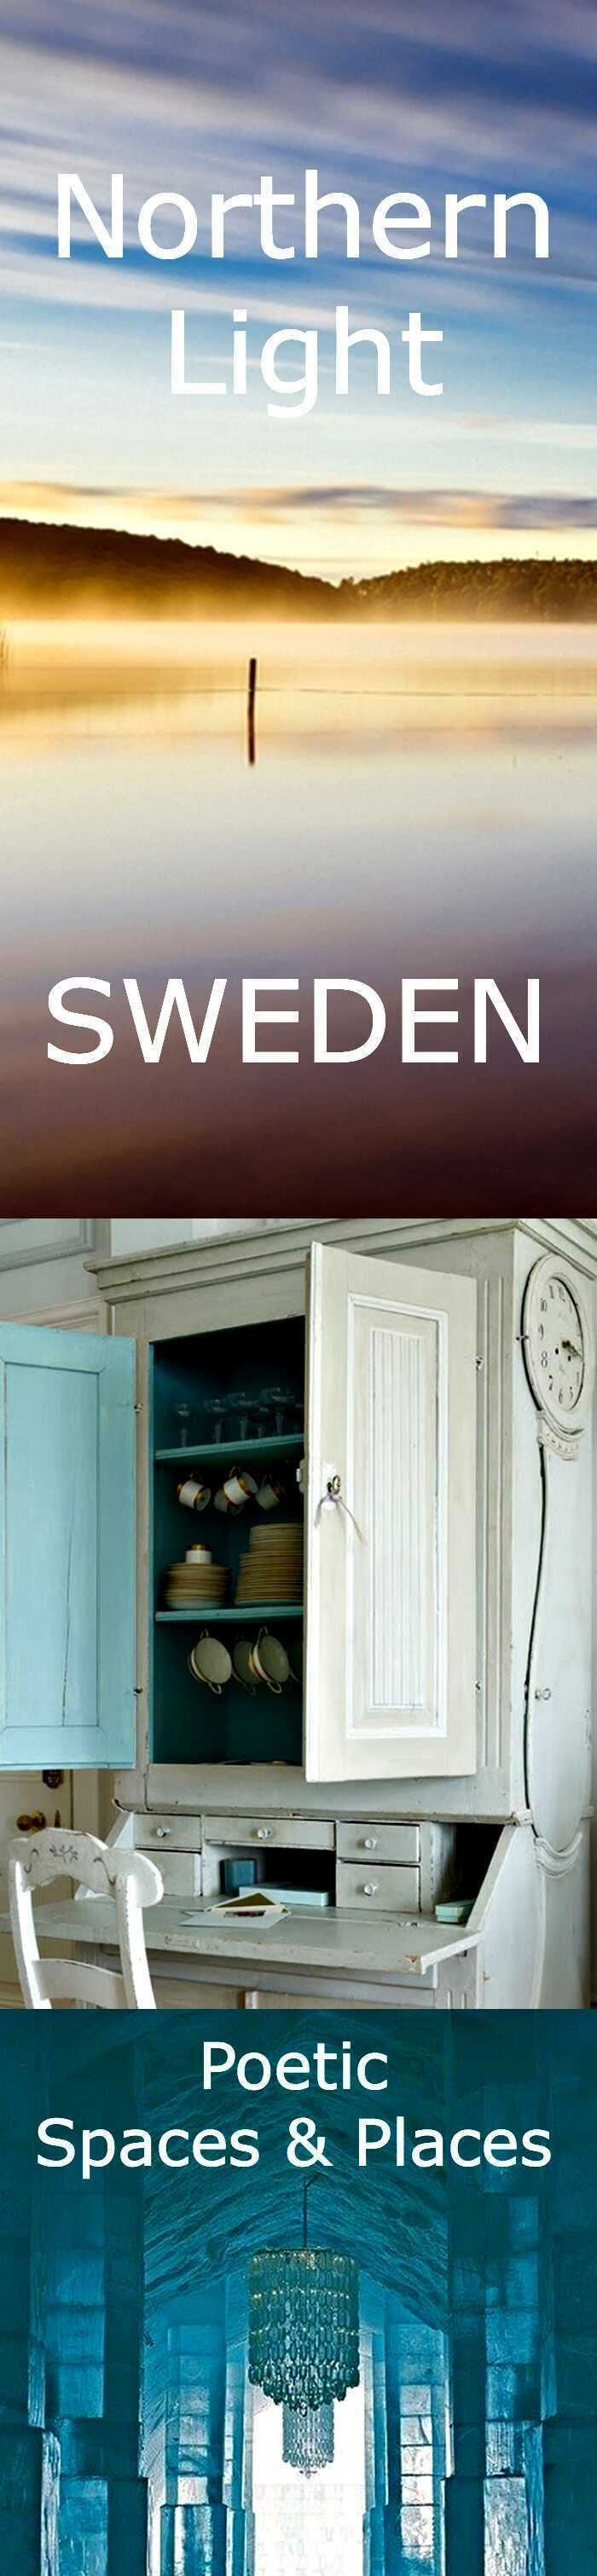 Northern Lights, Viking Mounds, Eco Lodges, Ice Castles - plus Gustavian Style Swedish Interiors that inspire stillness and solitude. Beautiful images of Sweden.